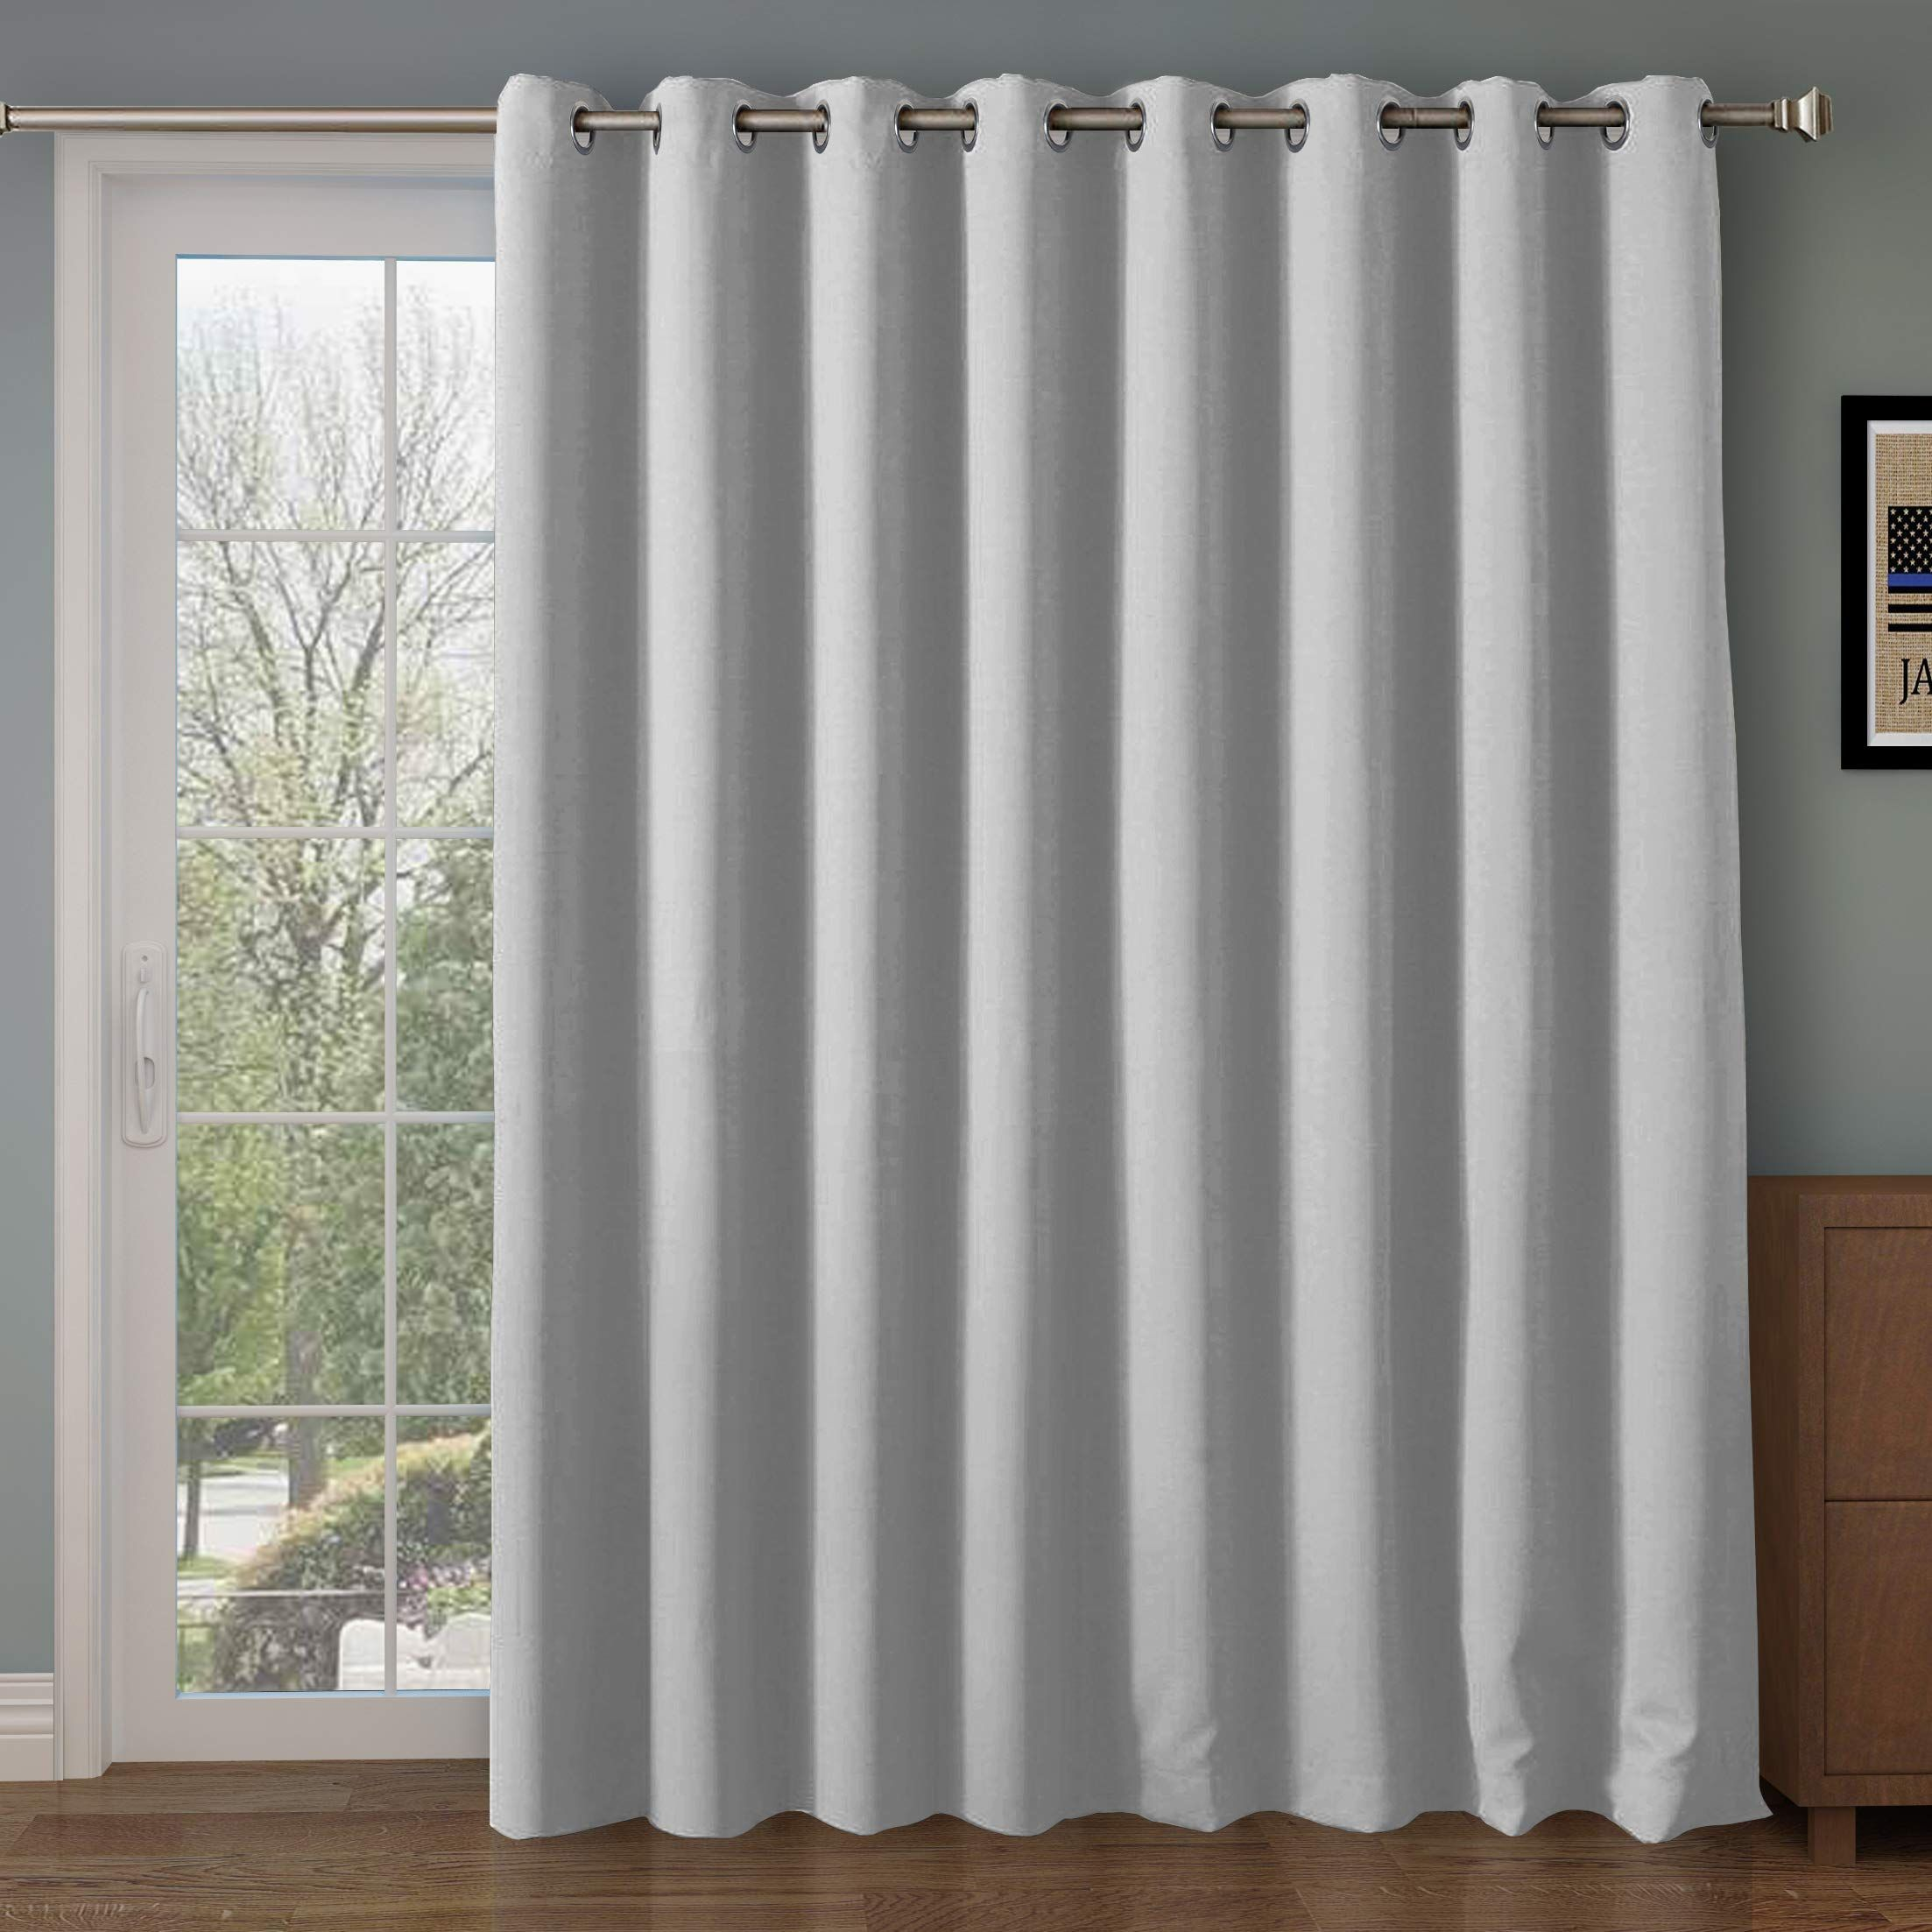 Rhf Function Curtain Wide Thermal Blackout Patio Door Curtain